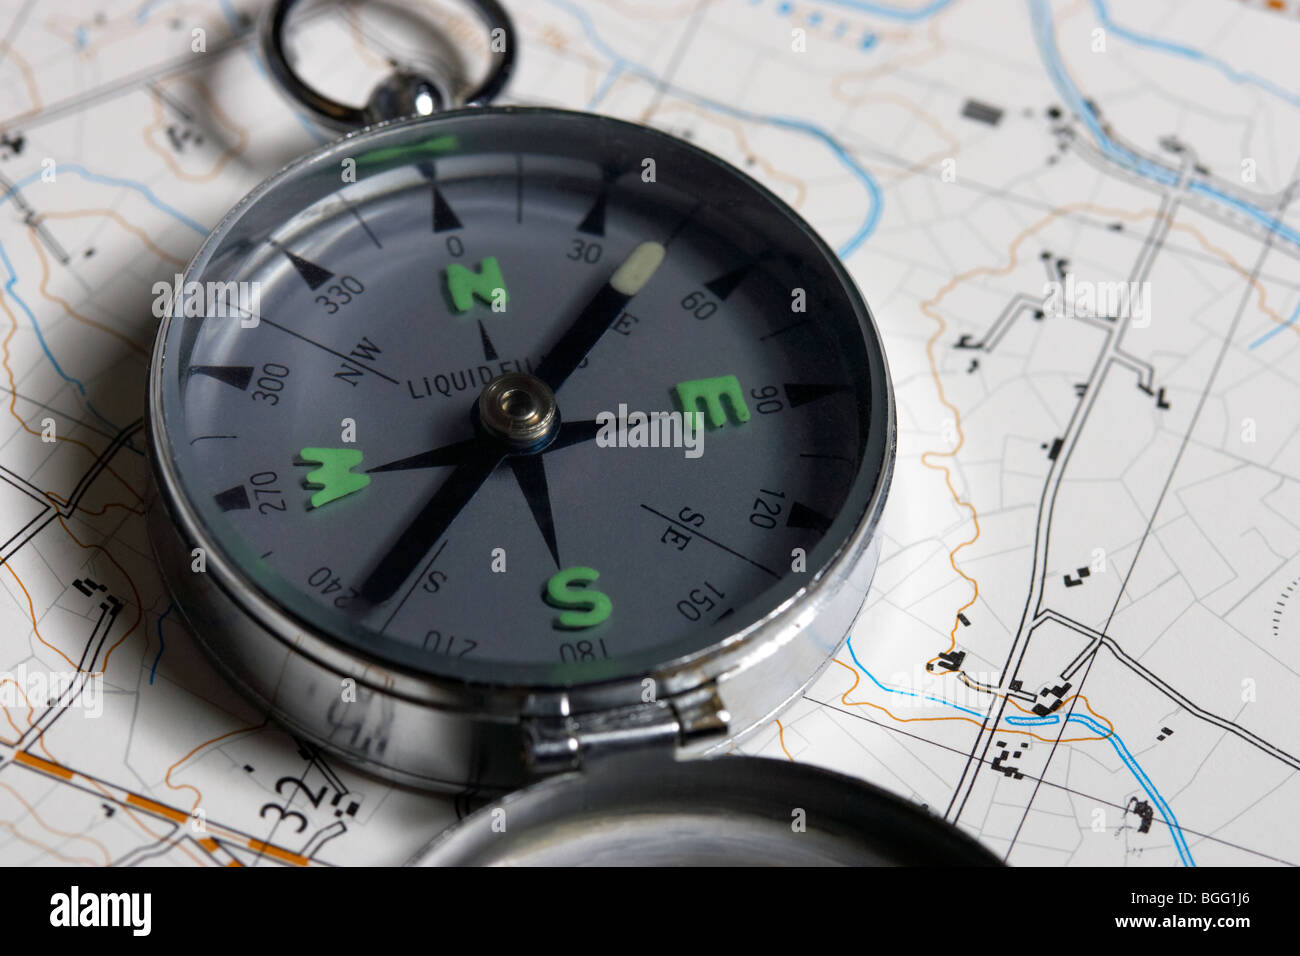 old style liquid filled metal compass resting on a map - Stock Image